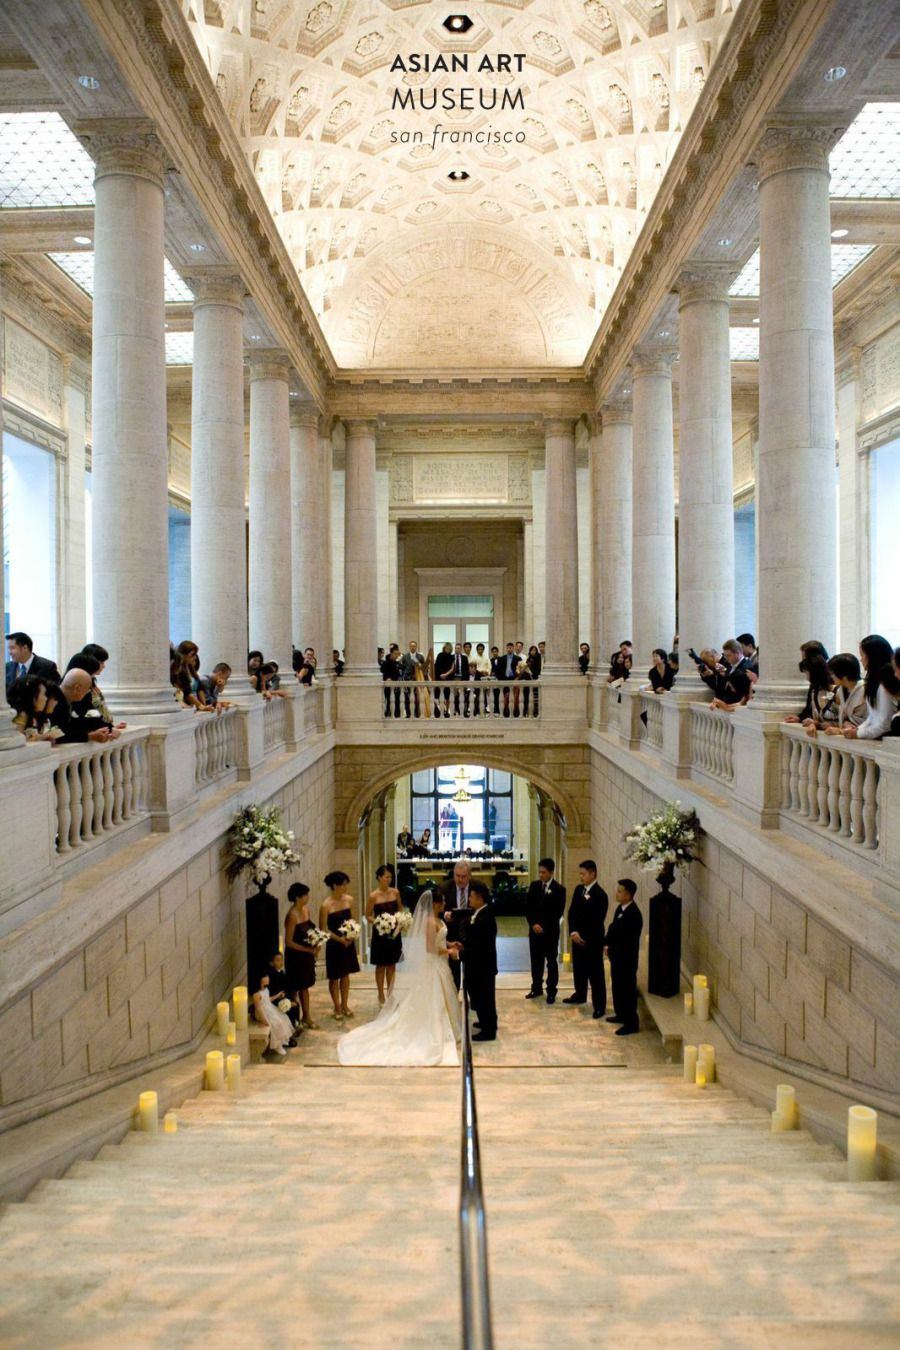 This venue has it all for art and architecture lovers in SF!